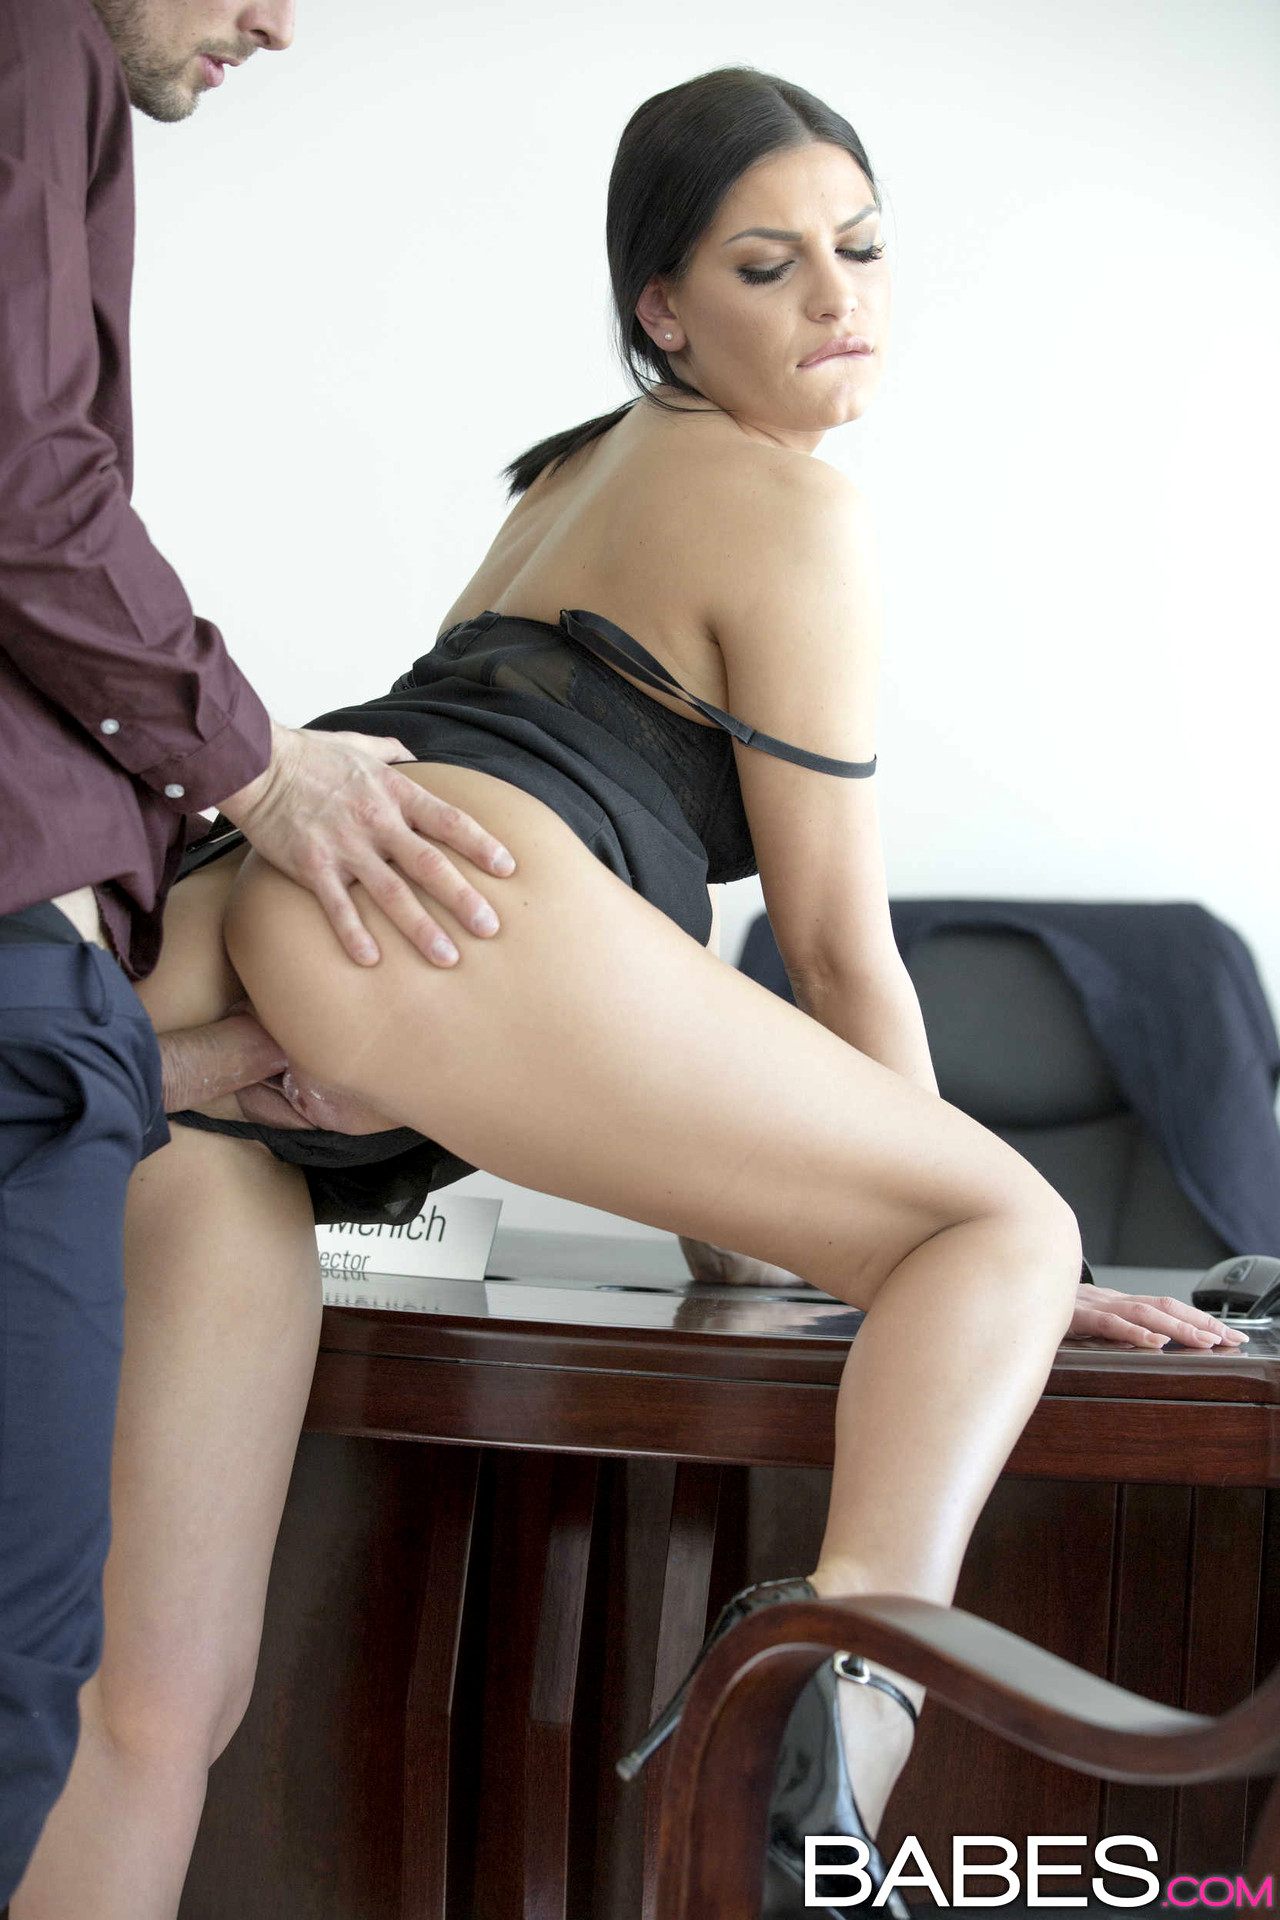 Babes Network Annie Wolf Exchange Office Instasex Sex Hd Pics-6072